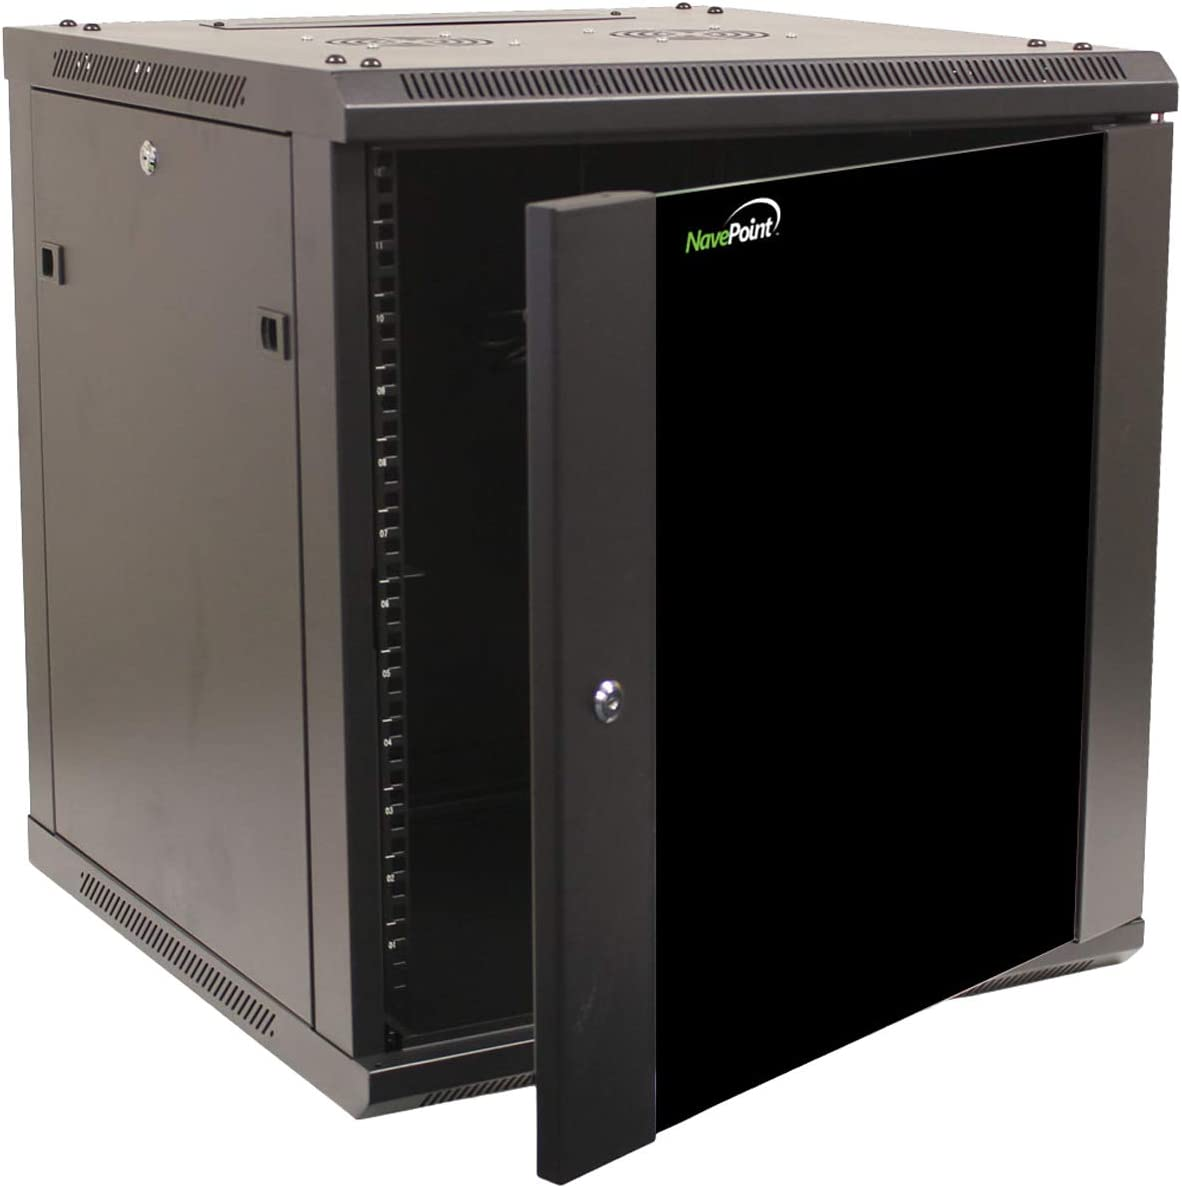 NavePoint 12U Wall Mount Network Server 600mm Depth Cabinet Rack Enclosure Glass Door Lock